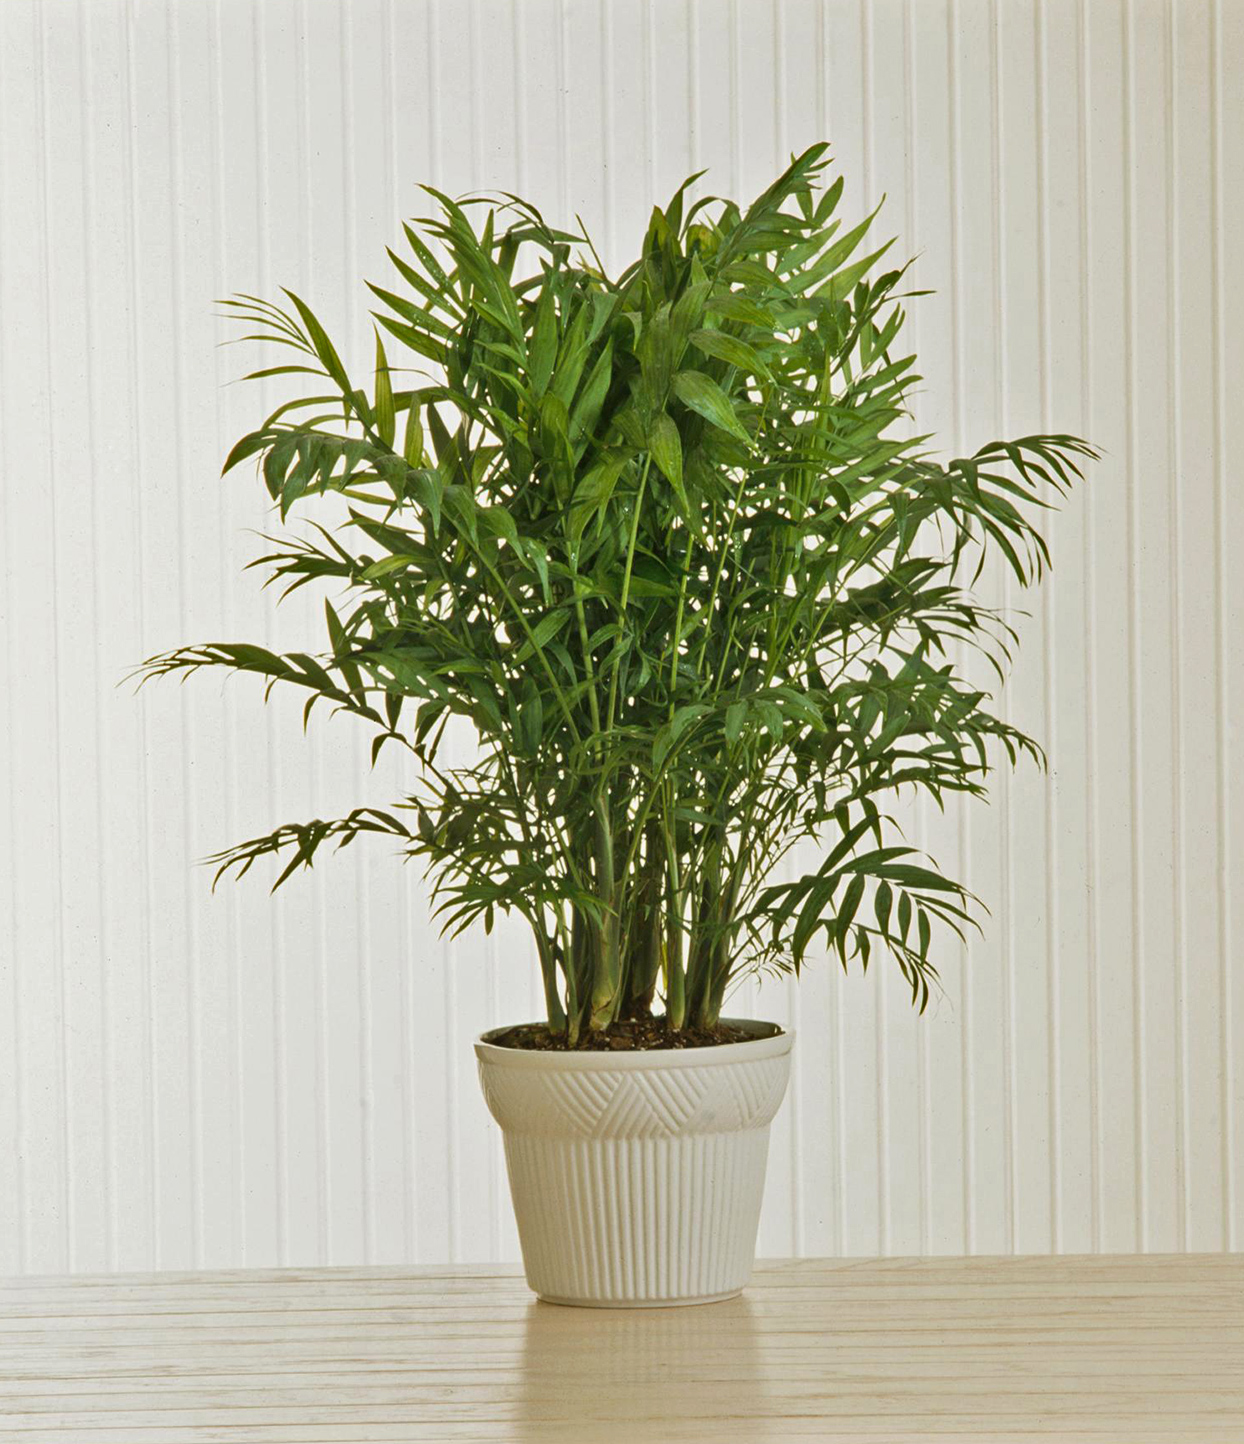 Parlor Palm in cream colored pot